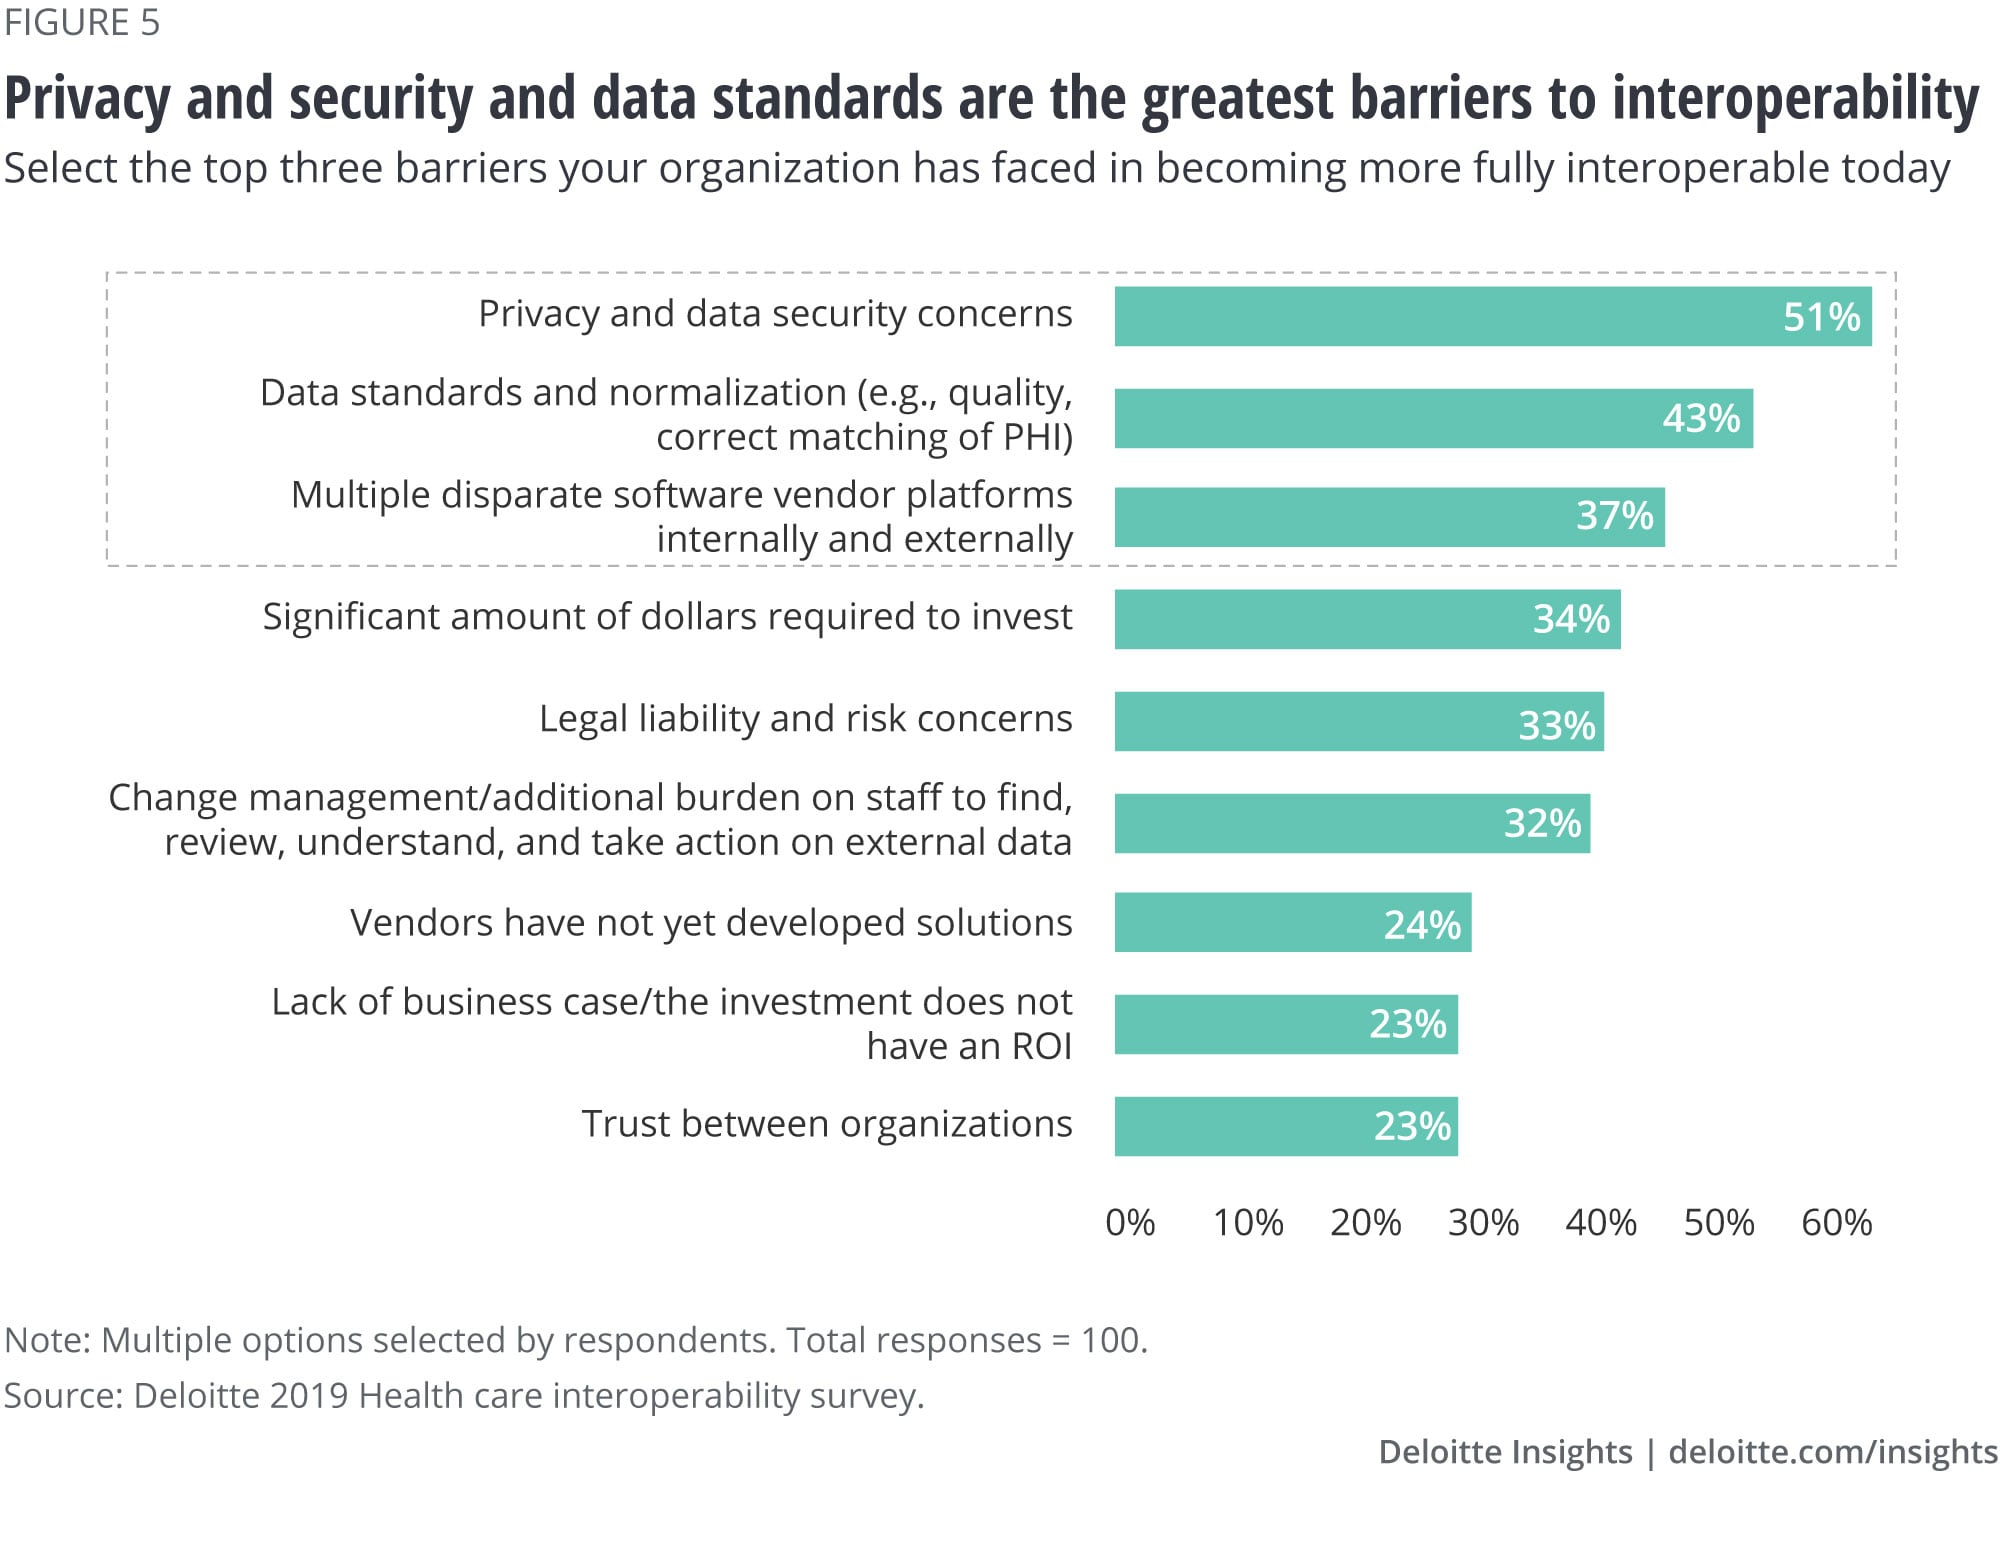 The greatest barriers to interoperability are privacy and security and data standards